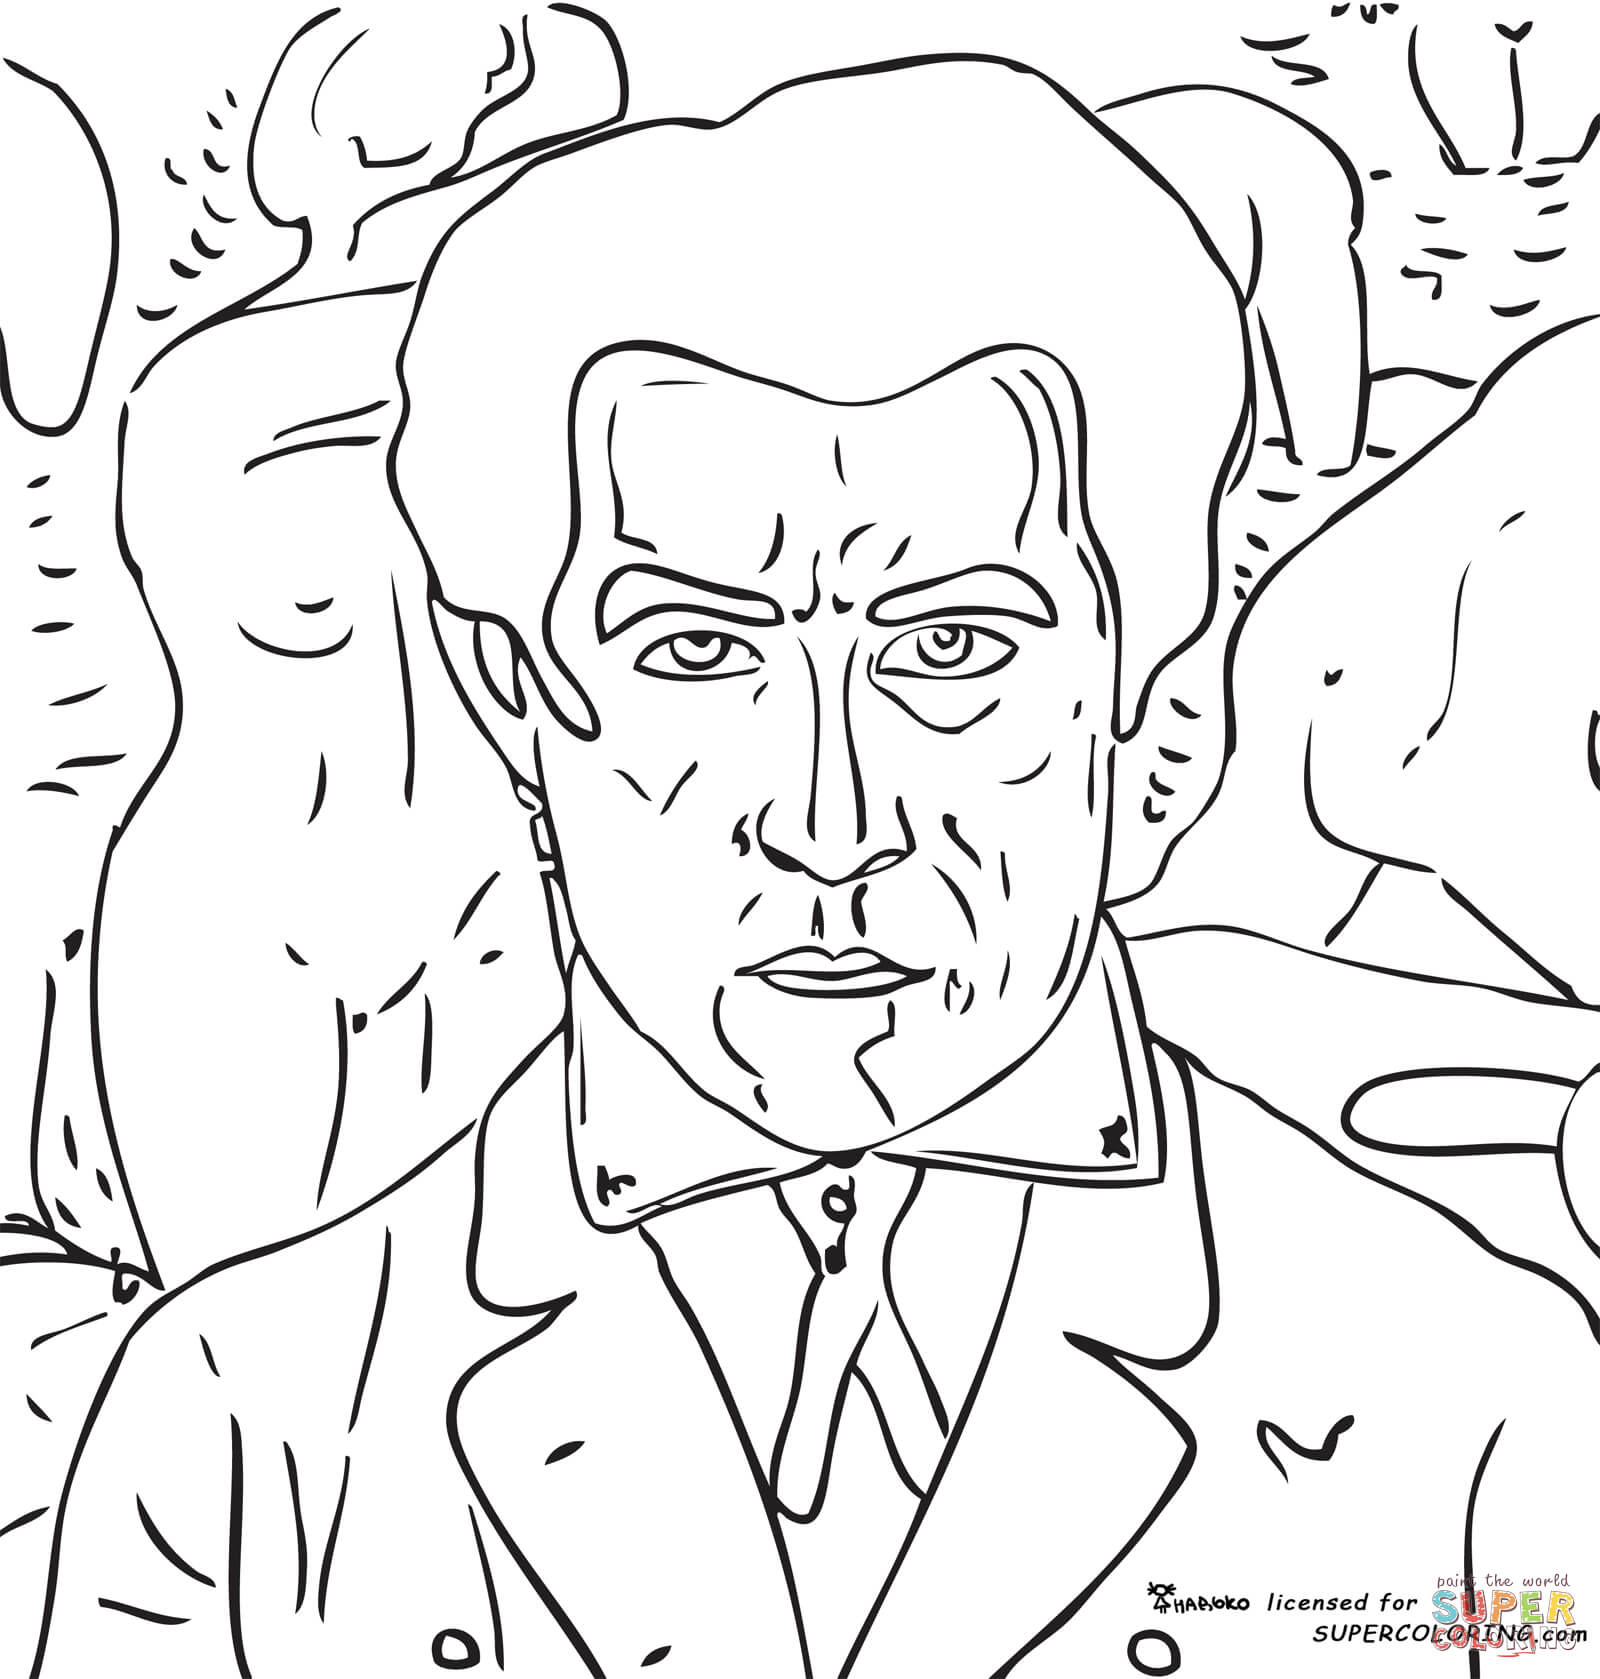 You Self Portrait Coloring Pages